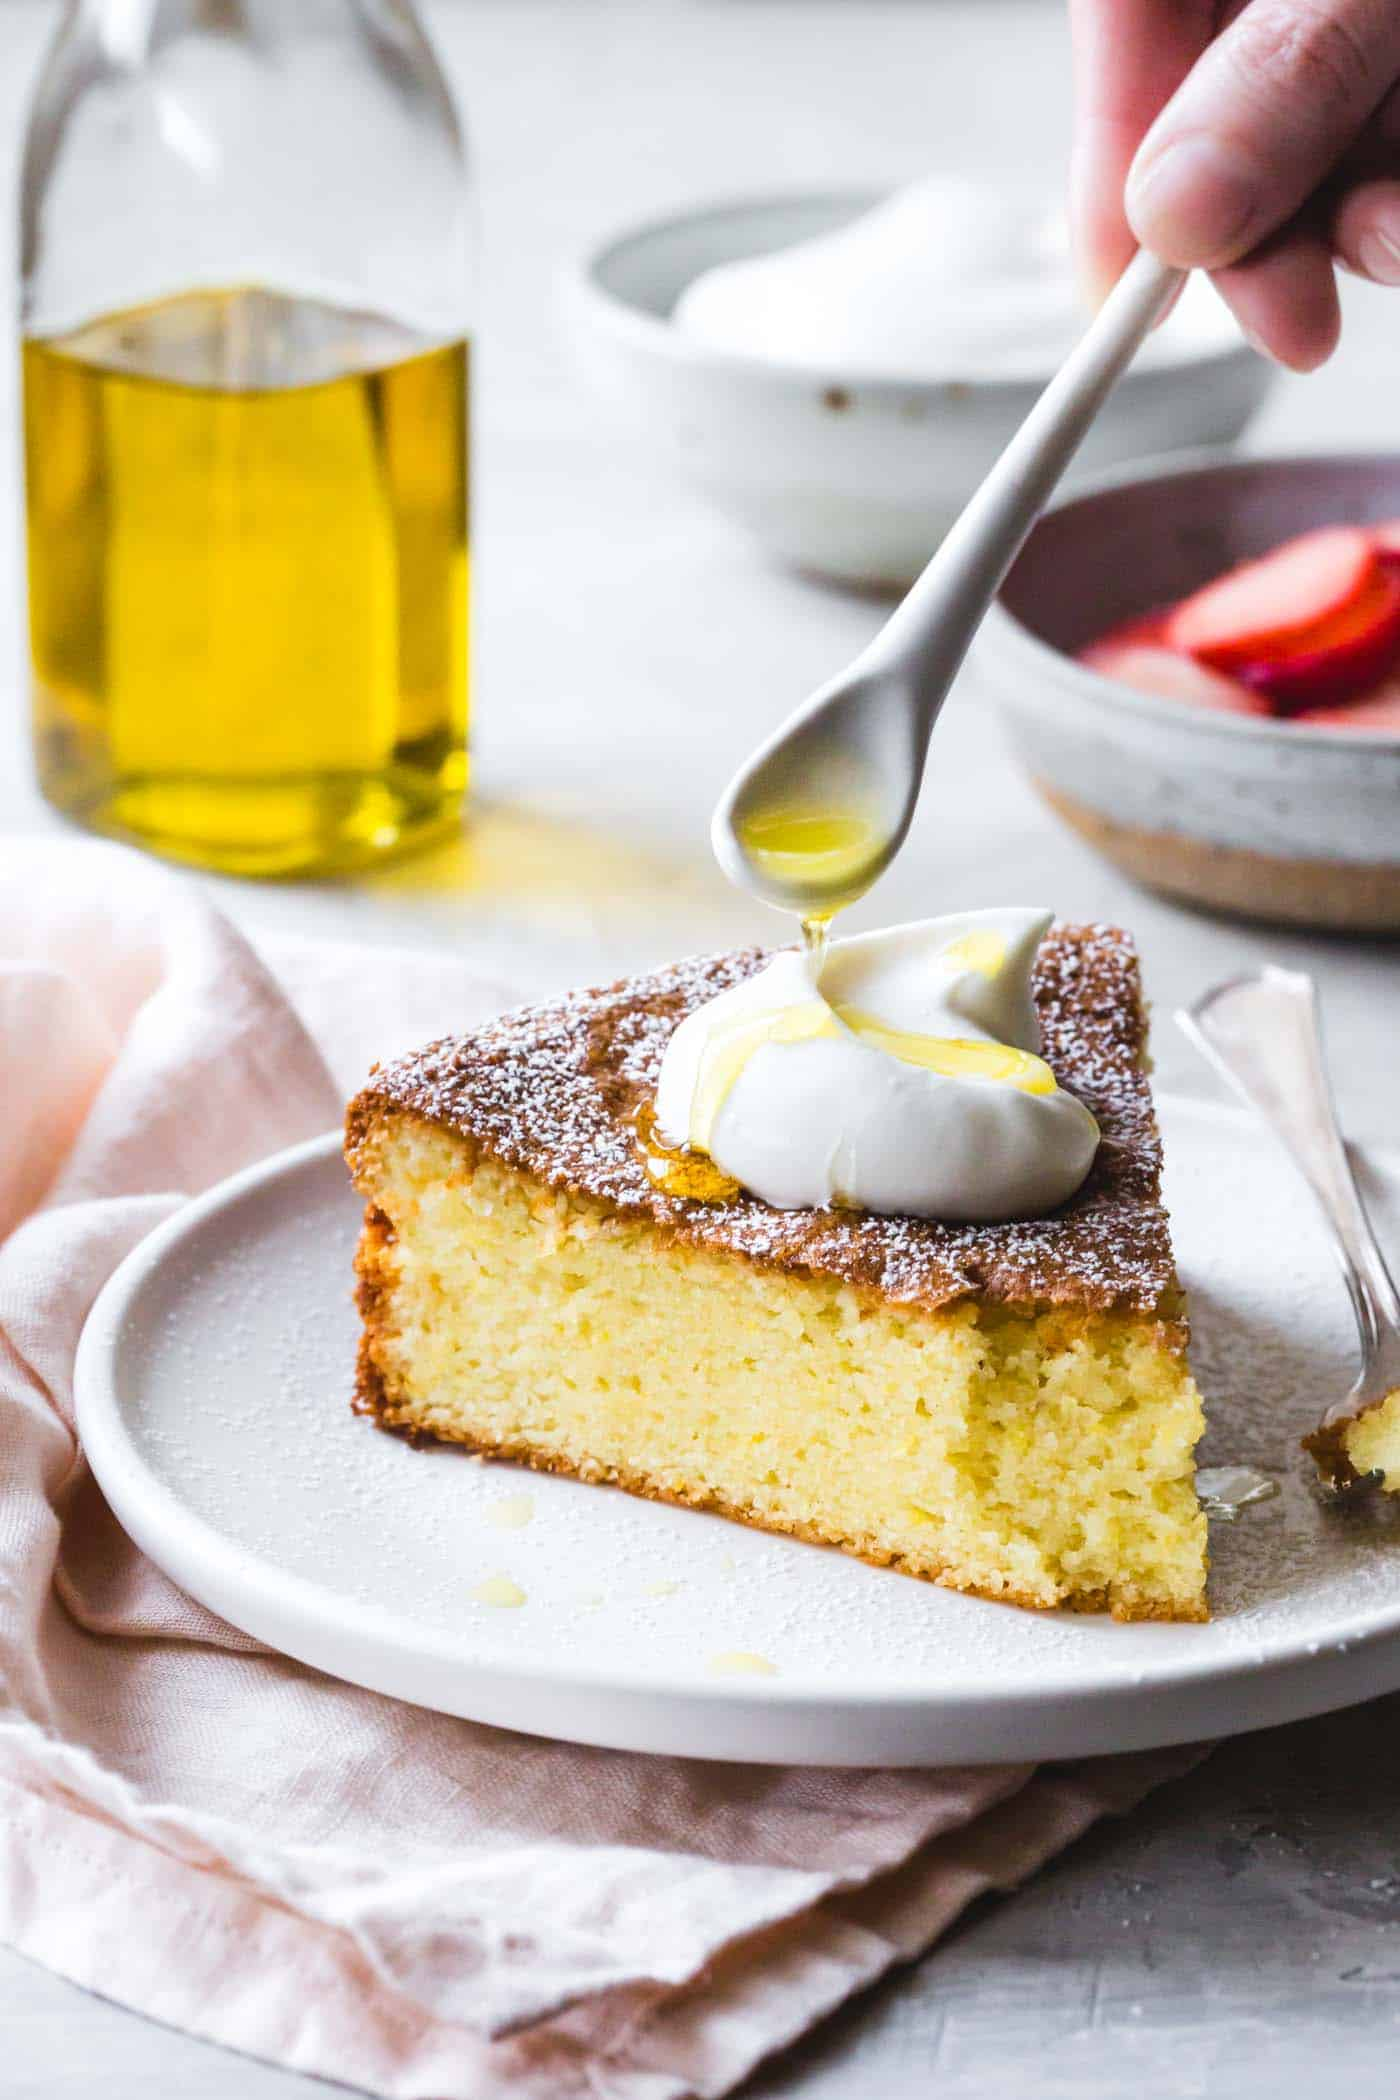 Drizzling olive oil on lemon almond gluten-free olive oil cake